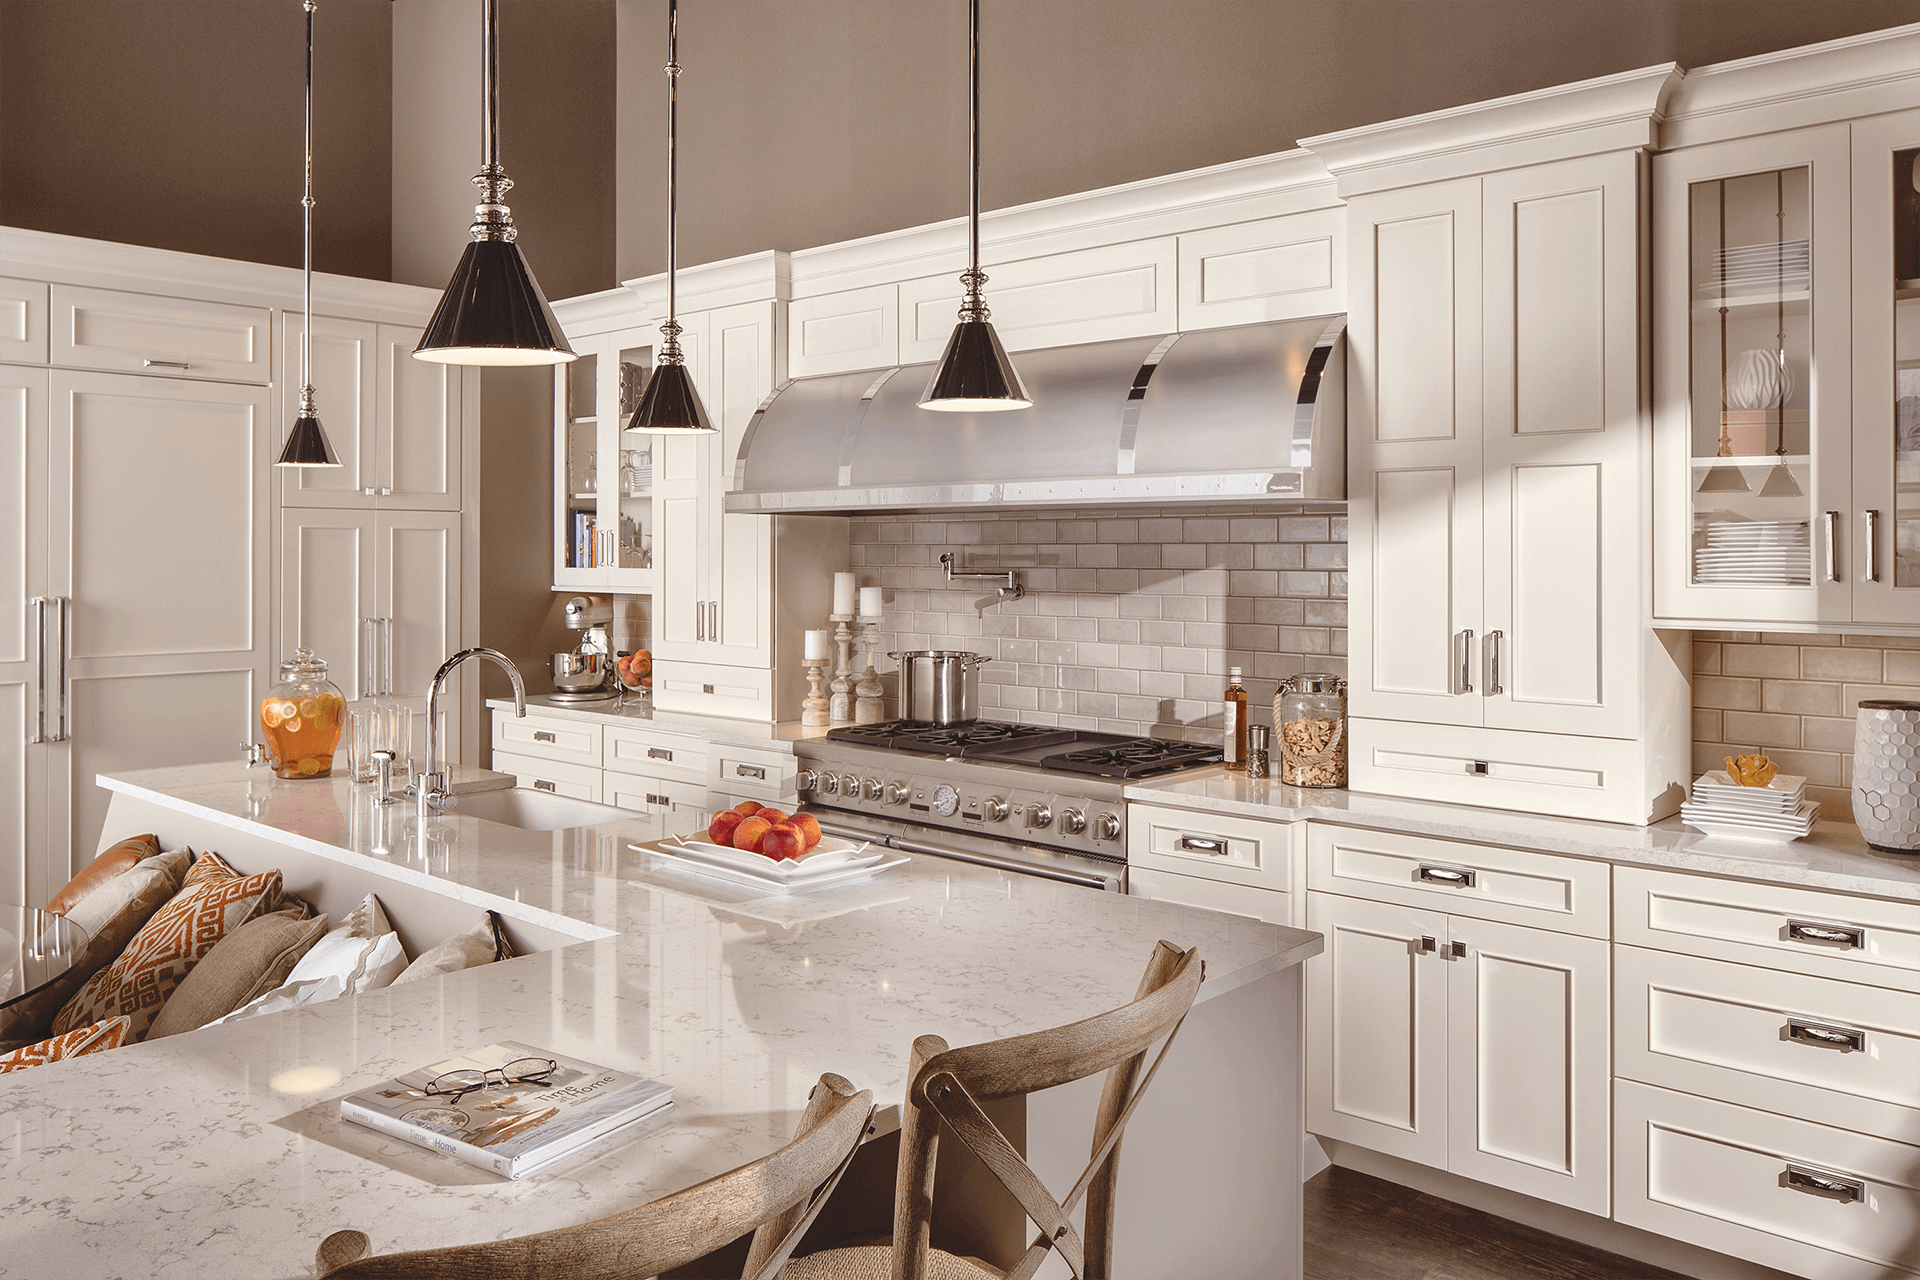 New white kitchen cabinets available from Lumberjack's Kitchen and Baths, serving Cleveland, Akron, Canton and all of northeast Ohio.